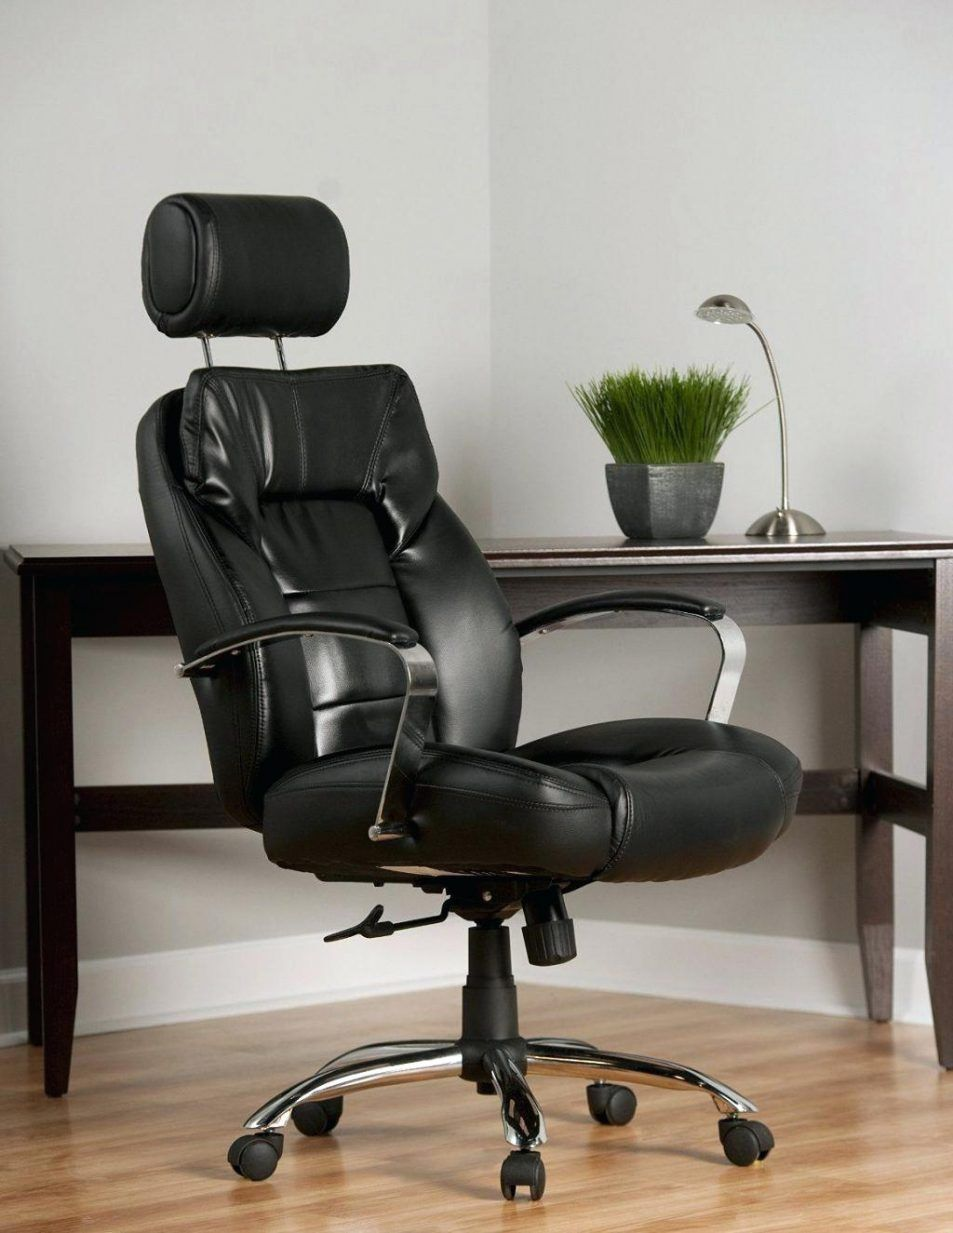 Most Comfortable Desk Chair 2017